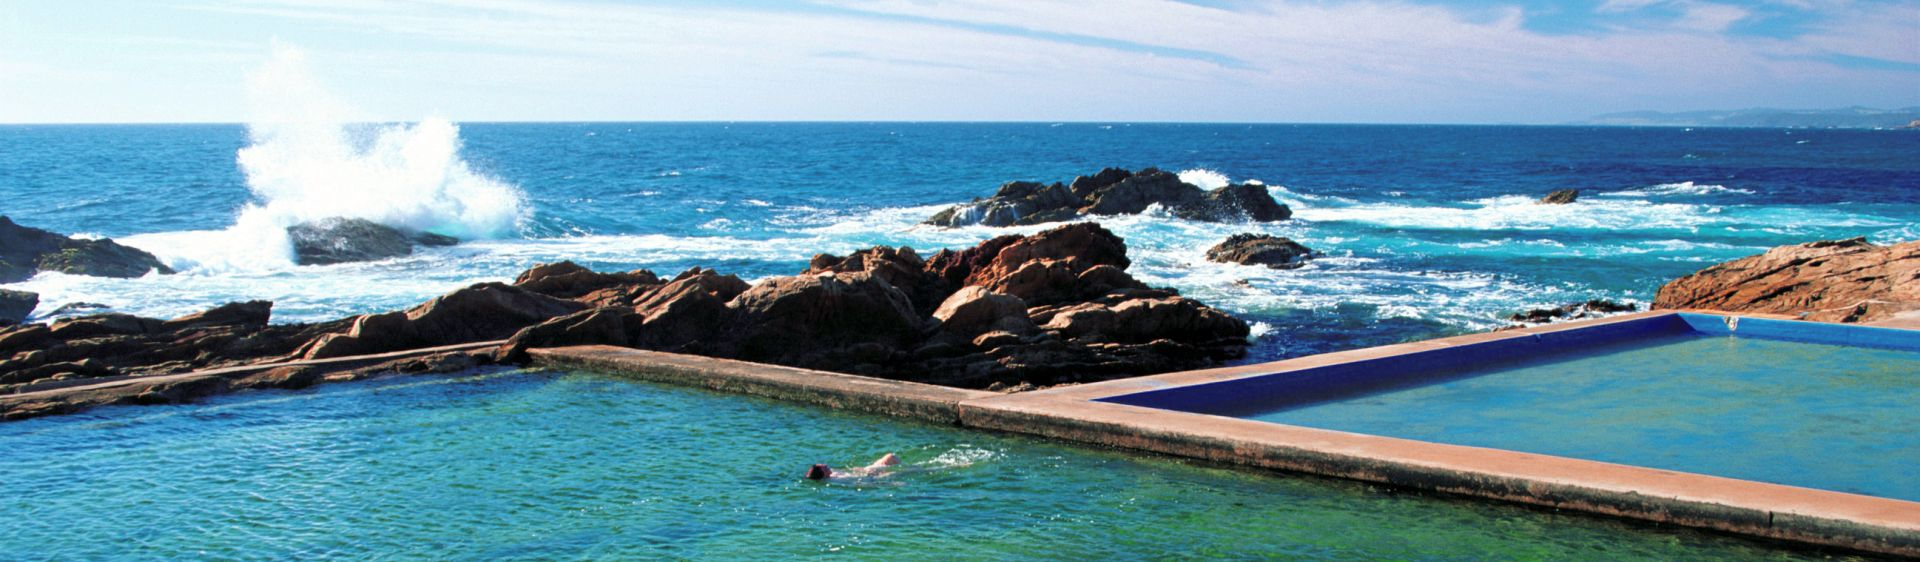 Bermagui NSW - Plan a Holiday - Accommodation, Maps & Beach